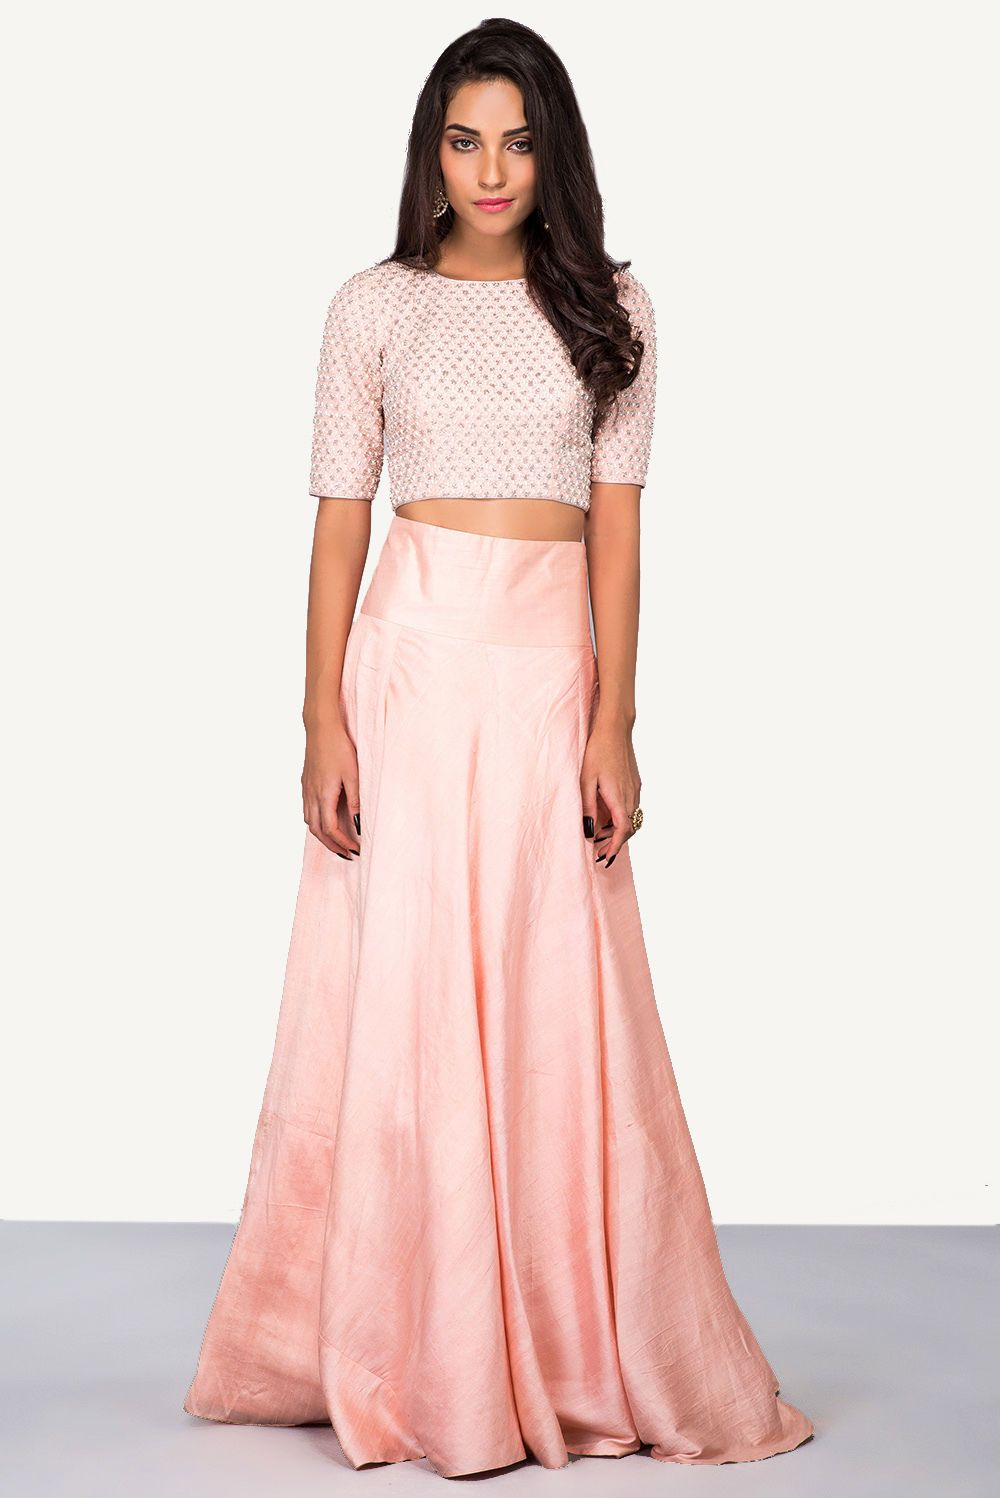 15997ebe443b7 Rent LTD ADDITION - Peach Embroidered Crop Top With High Waisted Skirt